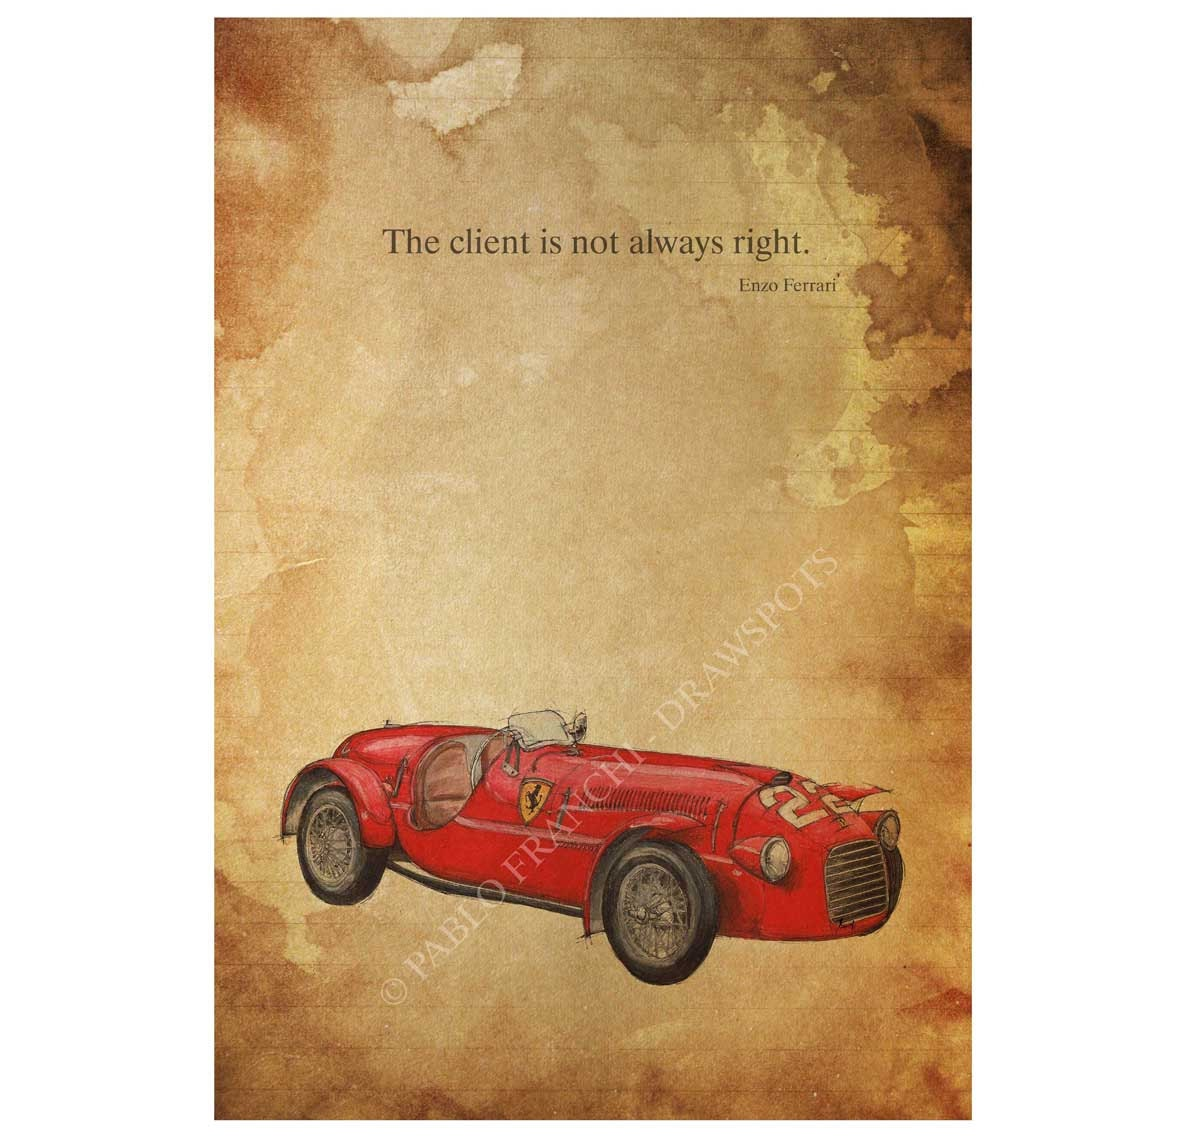 Personalized Enzo Ferrari Quote: The Client Is Not